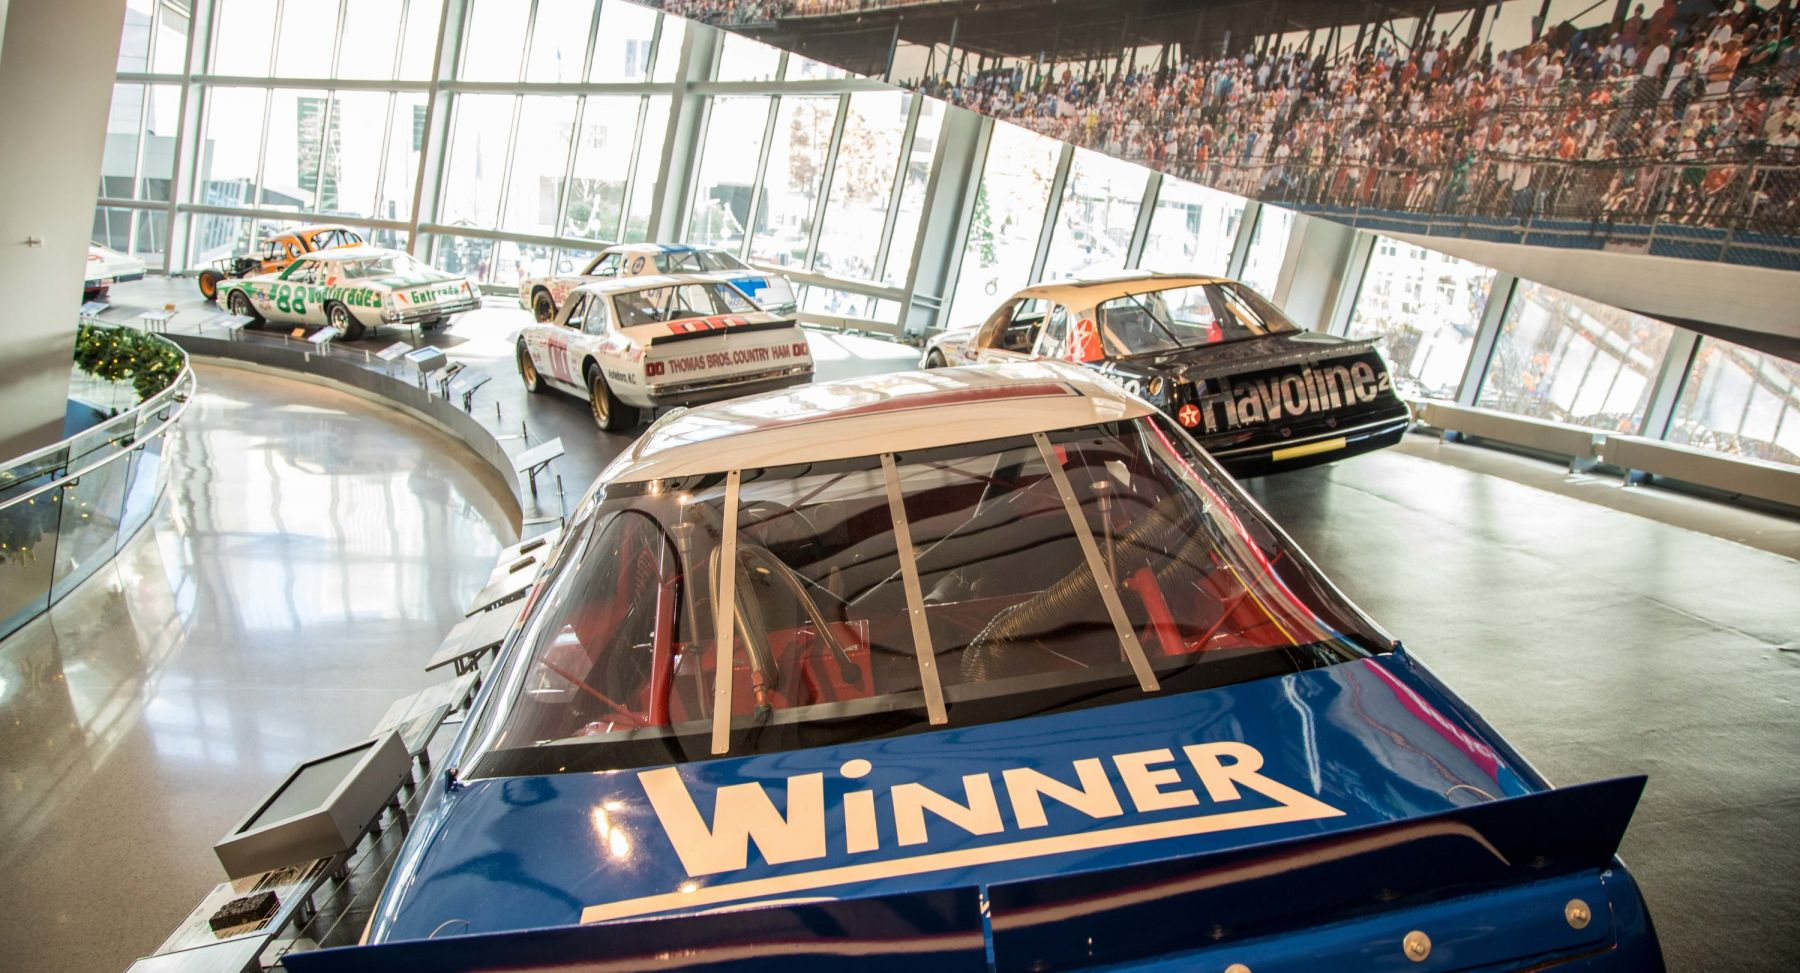 NASCAR Hall of Fame Glory Road Exhibit